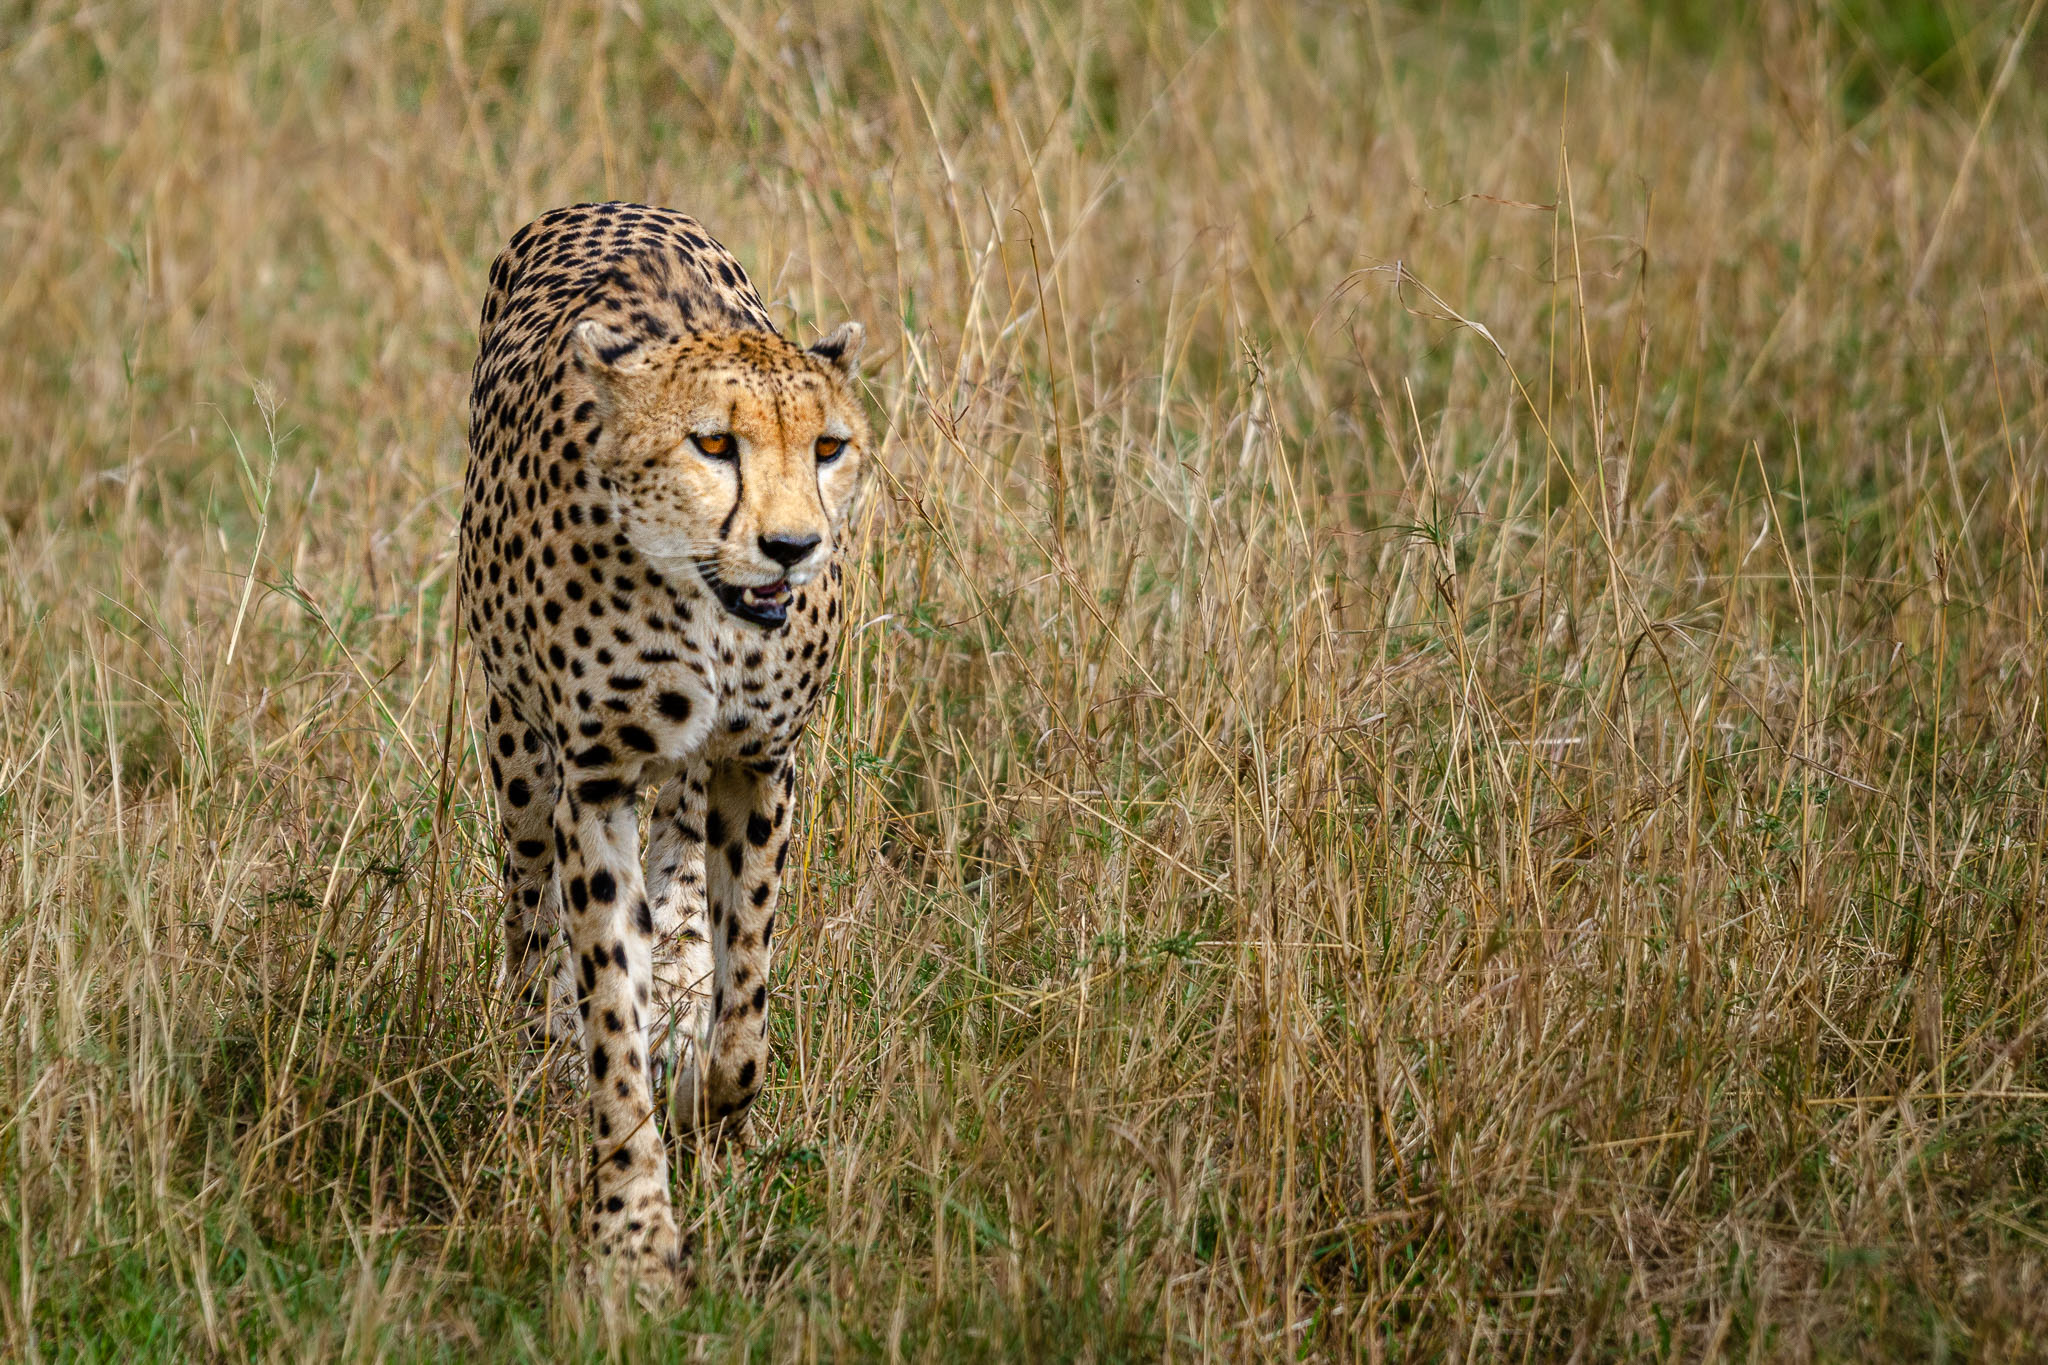 I met this guy with his brother out for an evening stroll. They were just wandering as cheetah do. Just looking for a bit of prey that would be easy enough to stalk and capture. Since they found nothing they just settled under a bush for a bit of shade.